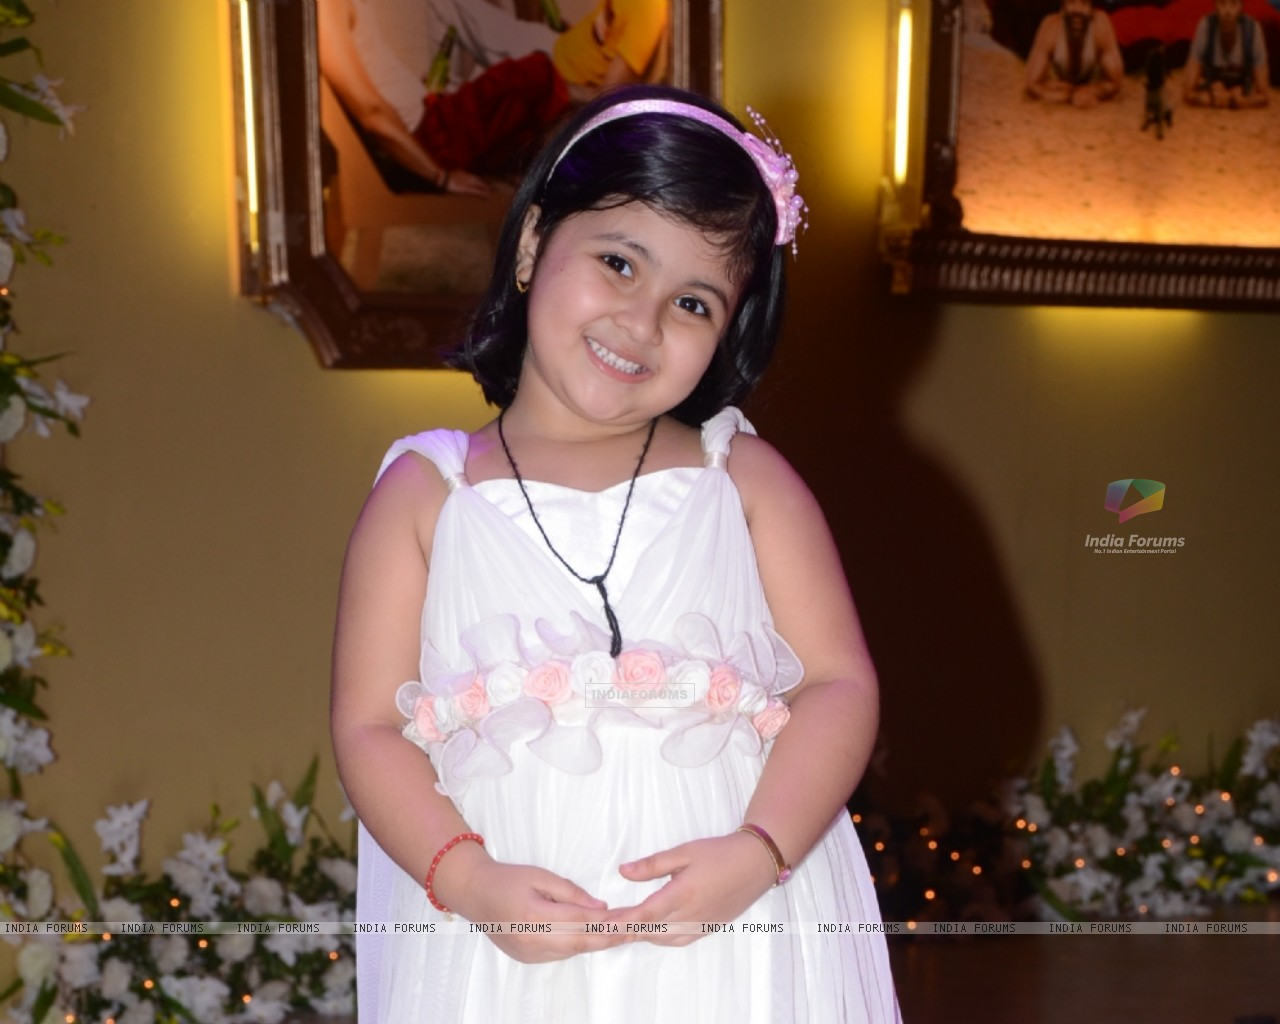 Amrita Mukherjee as Pihu in Bade Acche Lagte Hain (225303) size:1280x1024